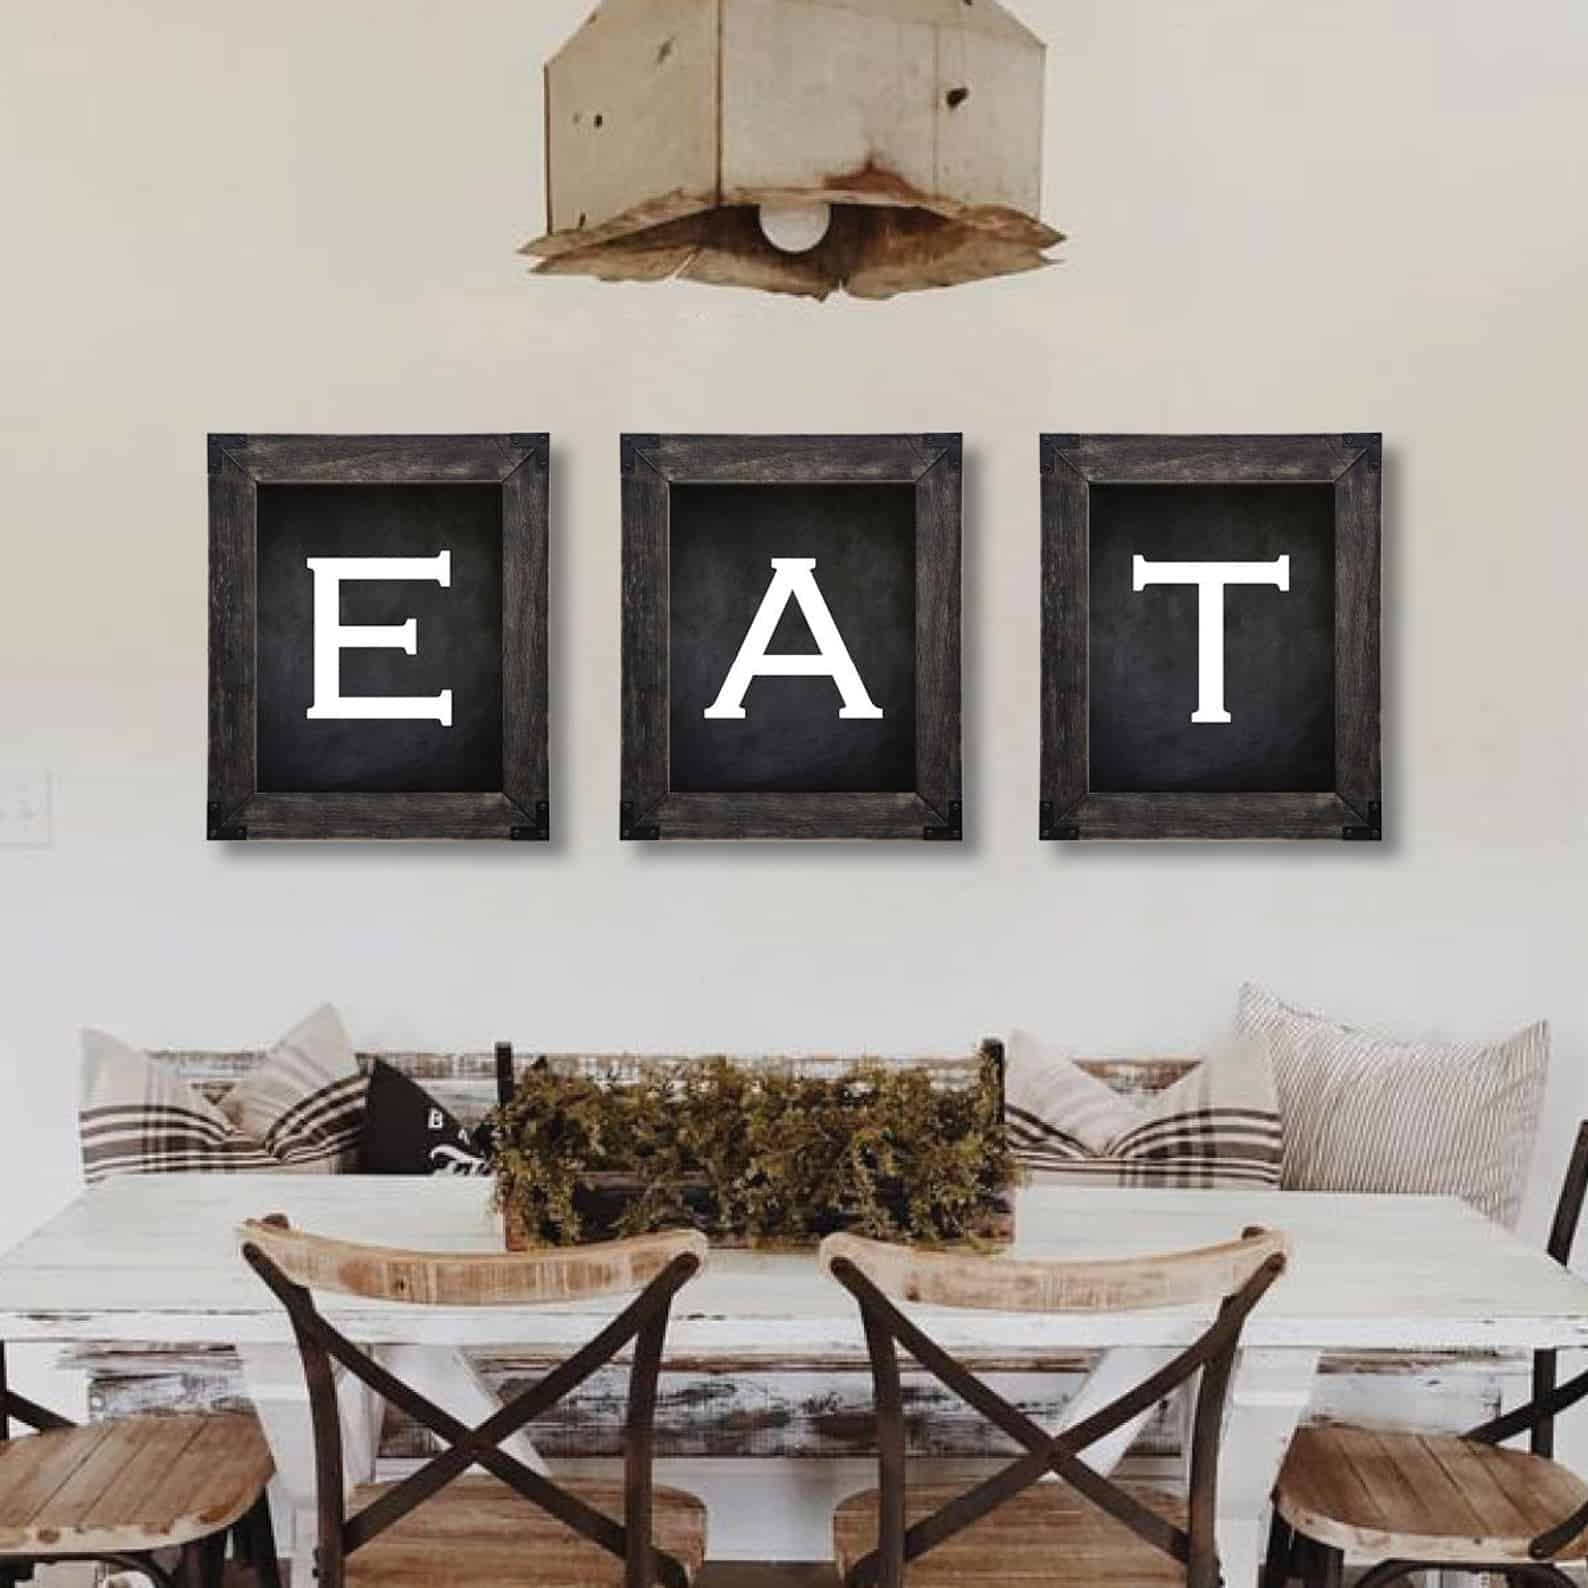 Eat dining room wall art